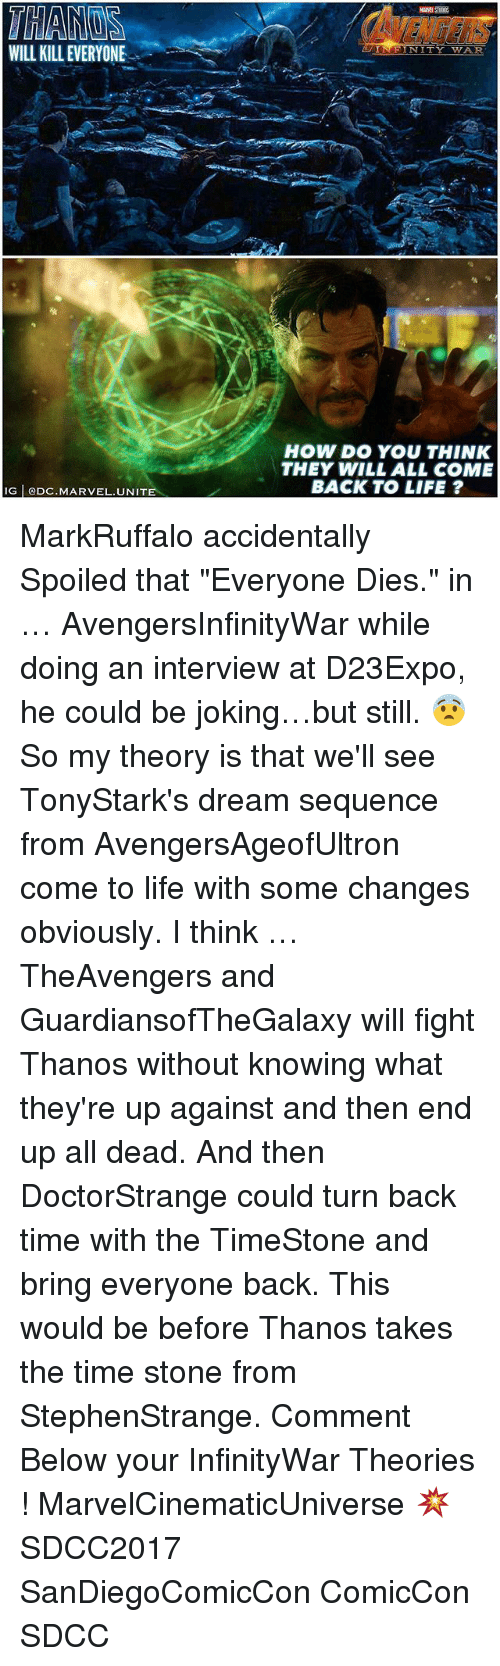 """Life, Memes, and Marvel: WILL KILL EVERYONE  N I  HOW DO YOU THINK  THEY WILL ALL COME  BACK TO LIFE ?  G ODC.MARVEL.UNITE MarkRuffalo accidentally Spoiled that """"Everyone Dies."""" in … AvengersInfinityWar while doing an interview at D23Expo, he could be joking…but still. 😨 So my theory is that we'll see TonyStark's dream sequence from AvengersAgeofUltron come to life with some changes obviously. I think … TheAvengers and GuardiansofTheGalaxy will fight Thanos without knowing what they're up against and then end up all dead. And then DoctorStrange could turn back time with the TimeStone and bring everyone back. This would be before Thanos takes the time stone from StephenStrange. Comment Below your InfinityWar Theories ! MarvelCinematicUniverse 💥 SDCC2017 SanDiegoComicCon ComicCon SDCC"""